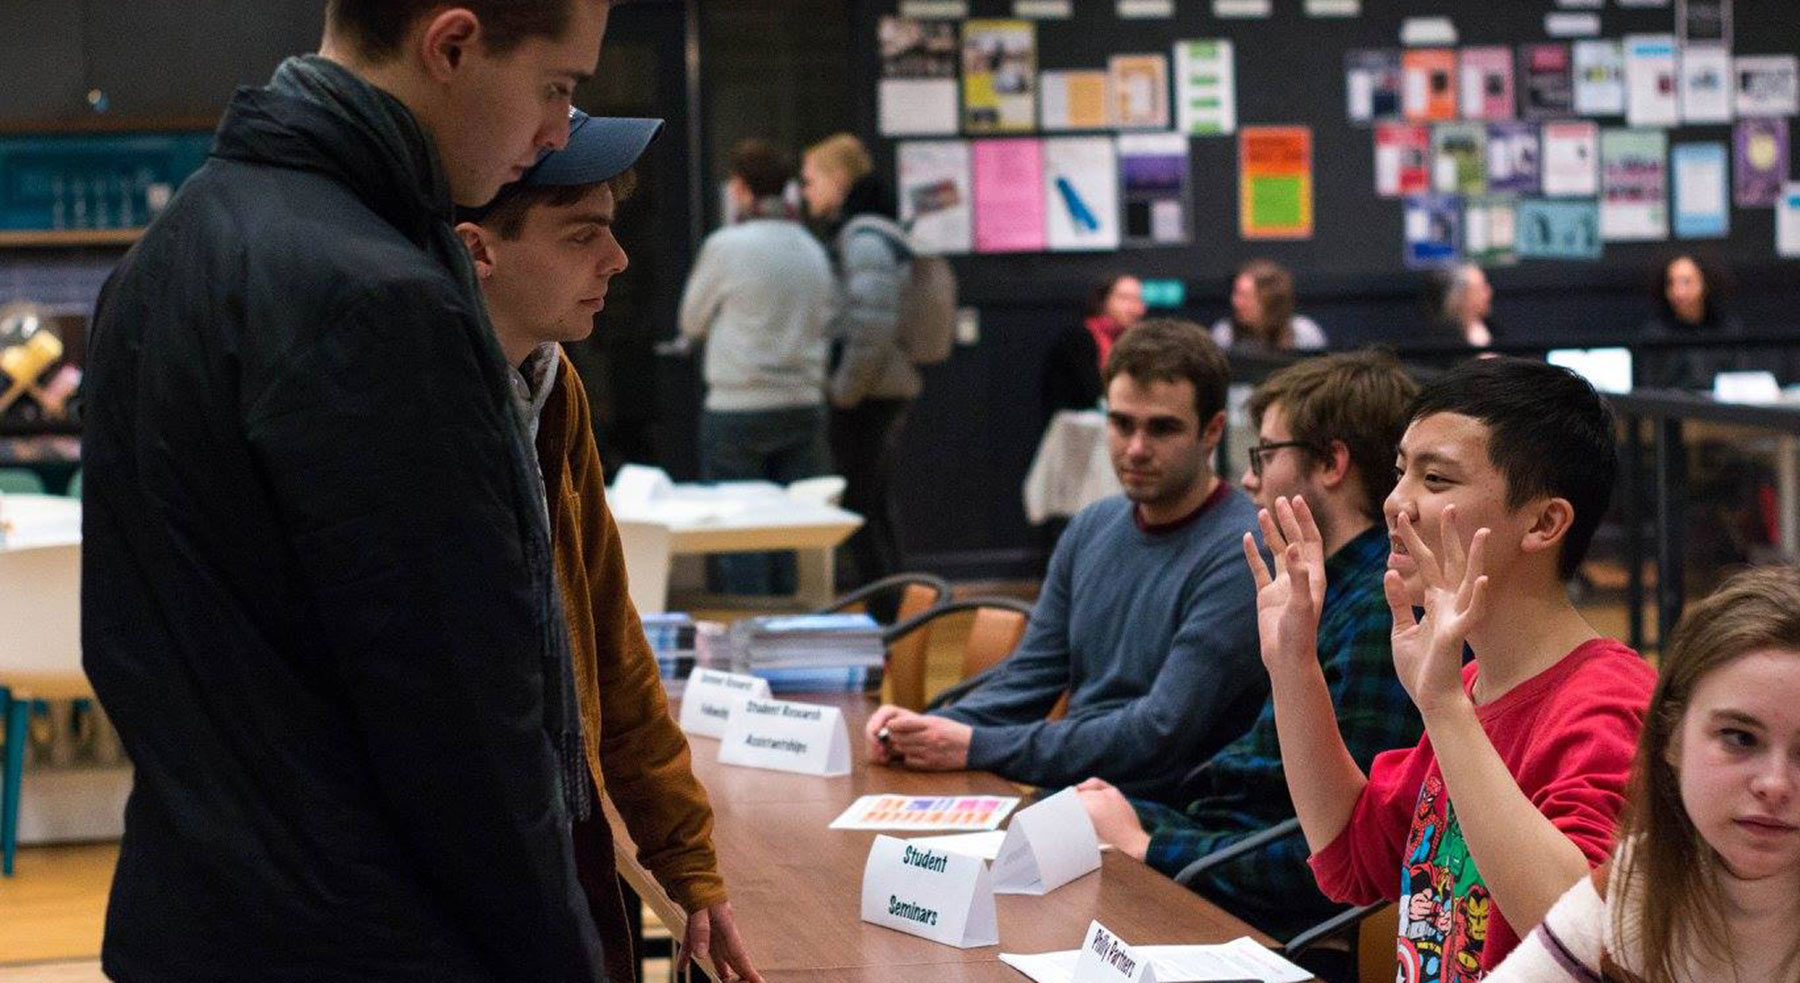 Students interacting at the HCAH open house